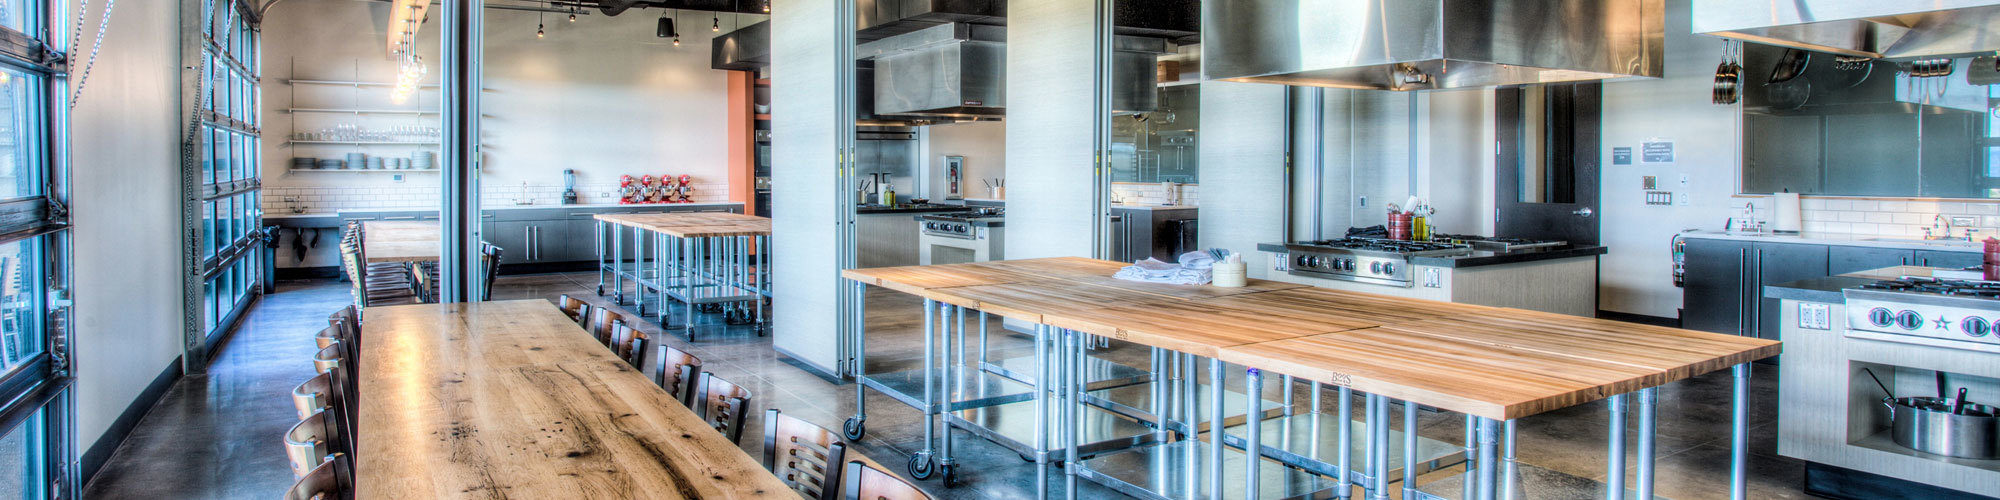 About Us: Uncorked Kitchen & Wine Bar in Denver\'s DTC Neighborhood